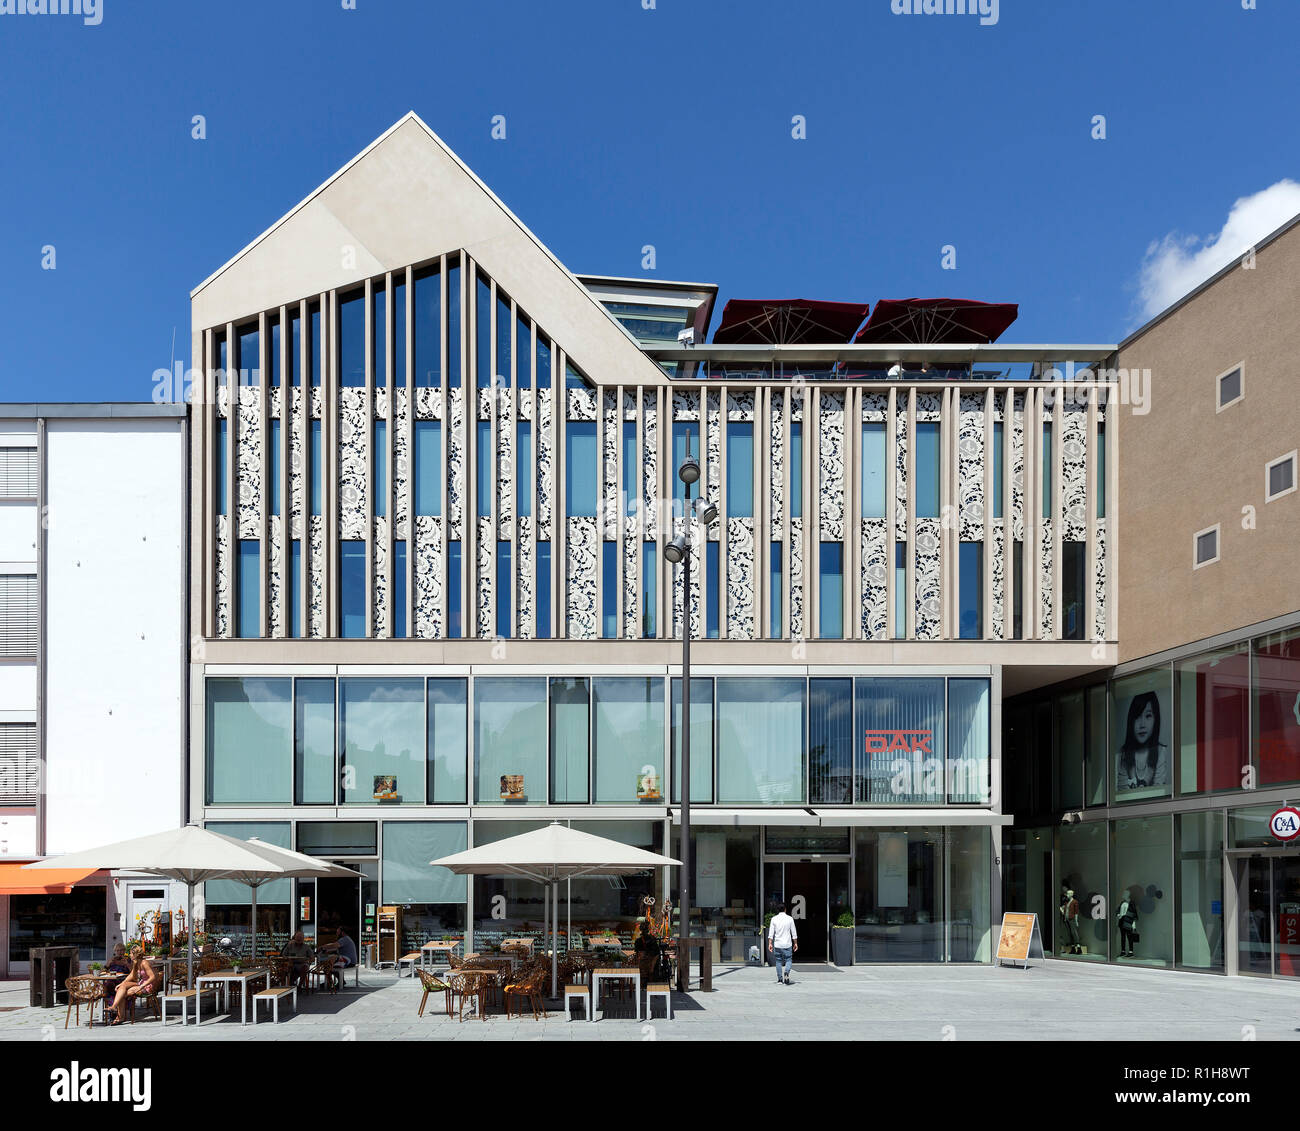 Neue Schranne with shops, offices and practices, ensemble of contemporary architecture in the Memmingen Old Town, Memmingen - Stock Image